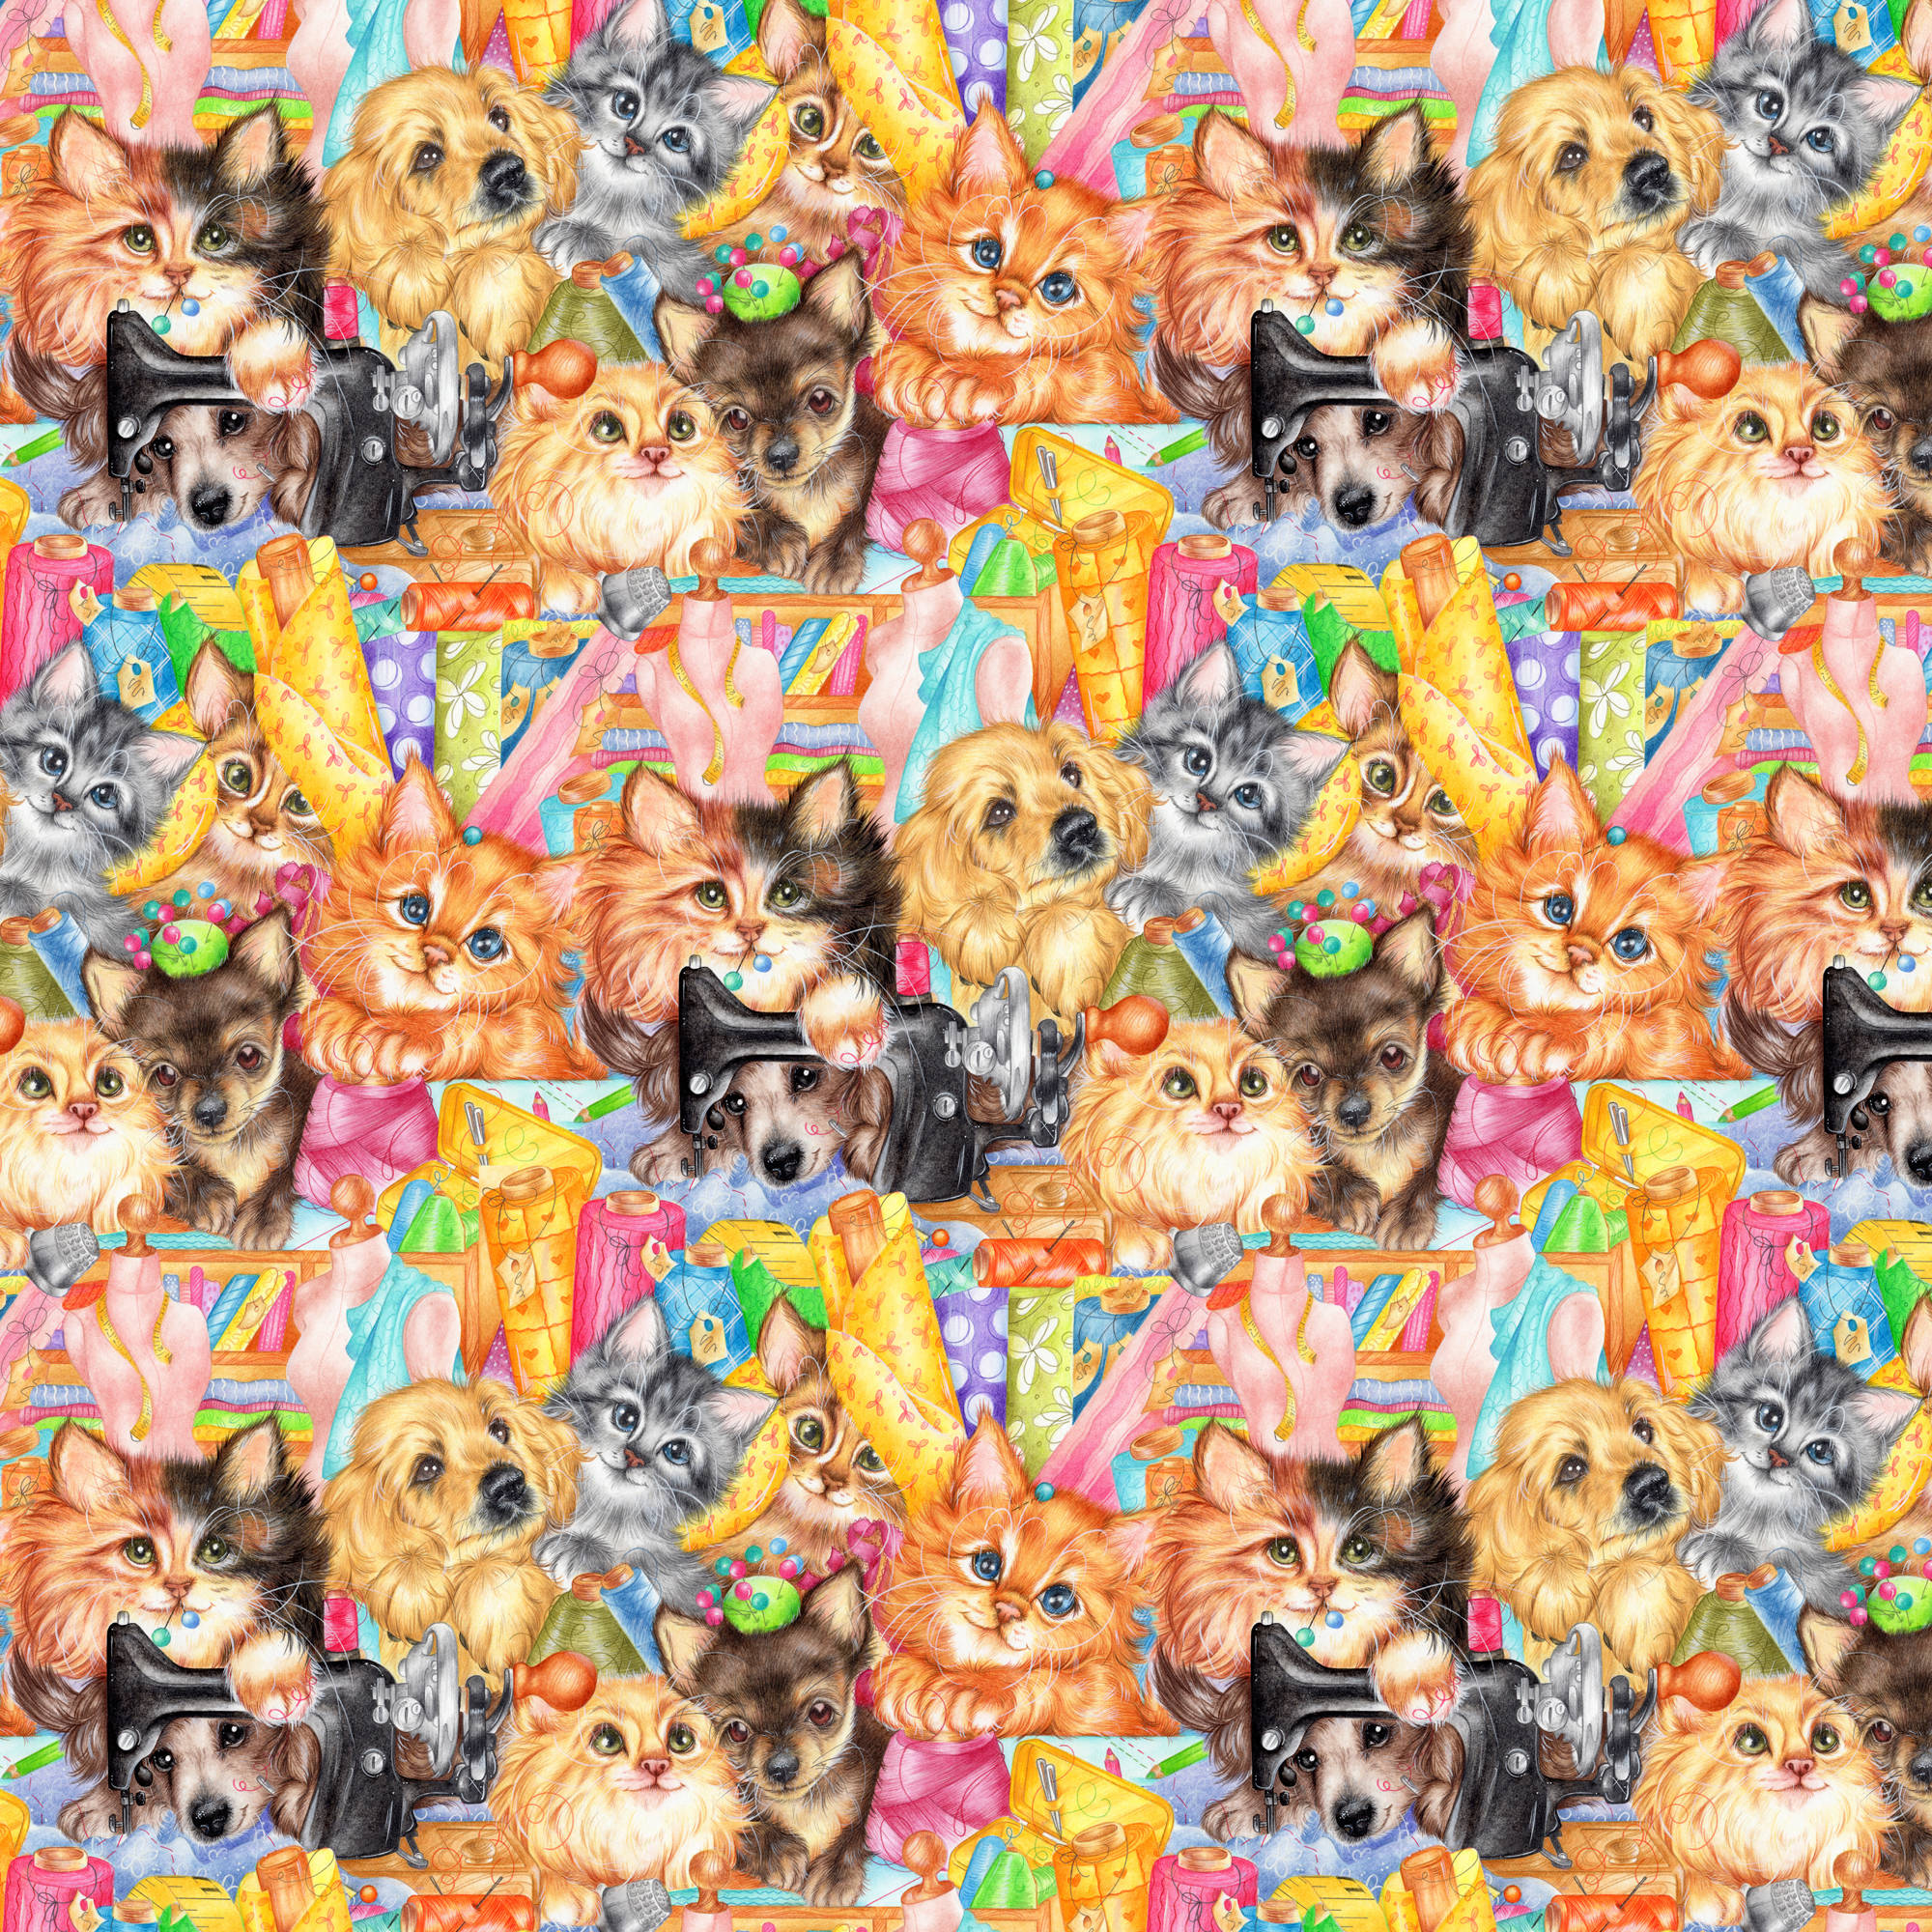 Sew Happy Animals Quilting Cotton Fabric By The Yard, 44""